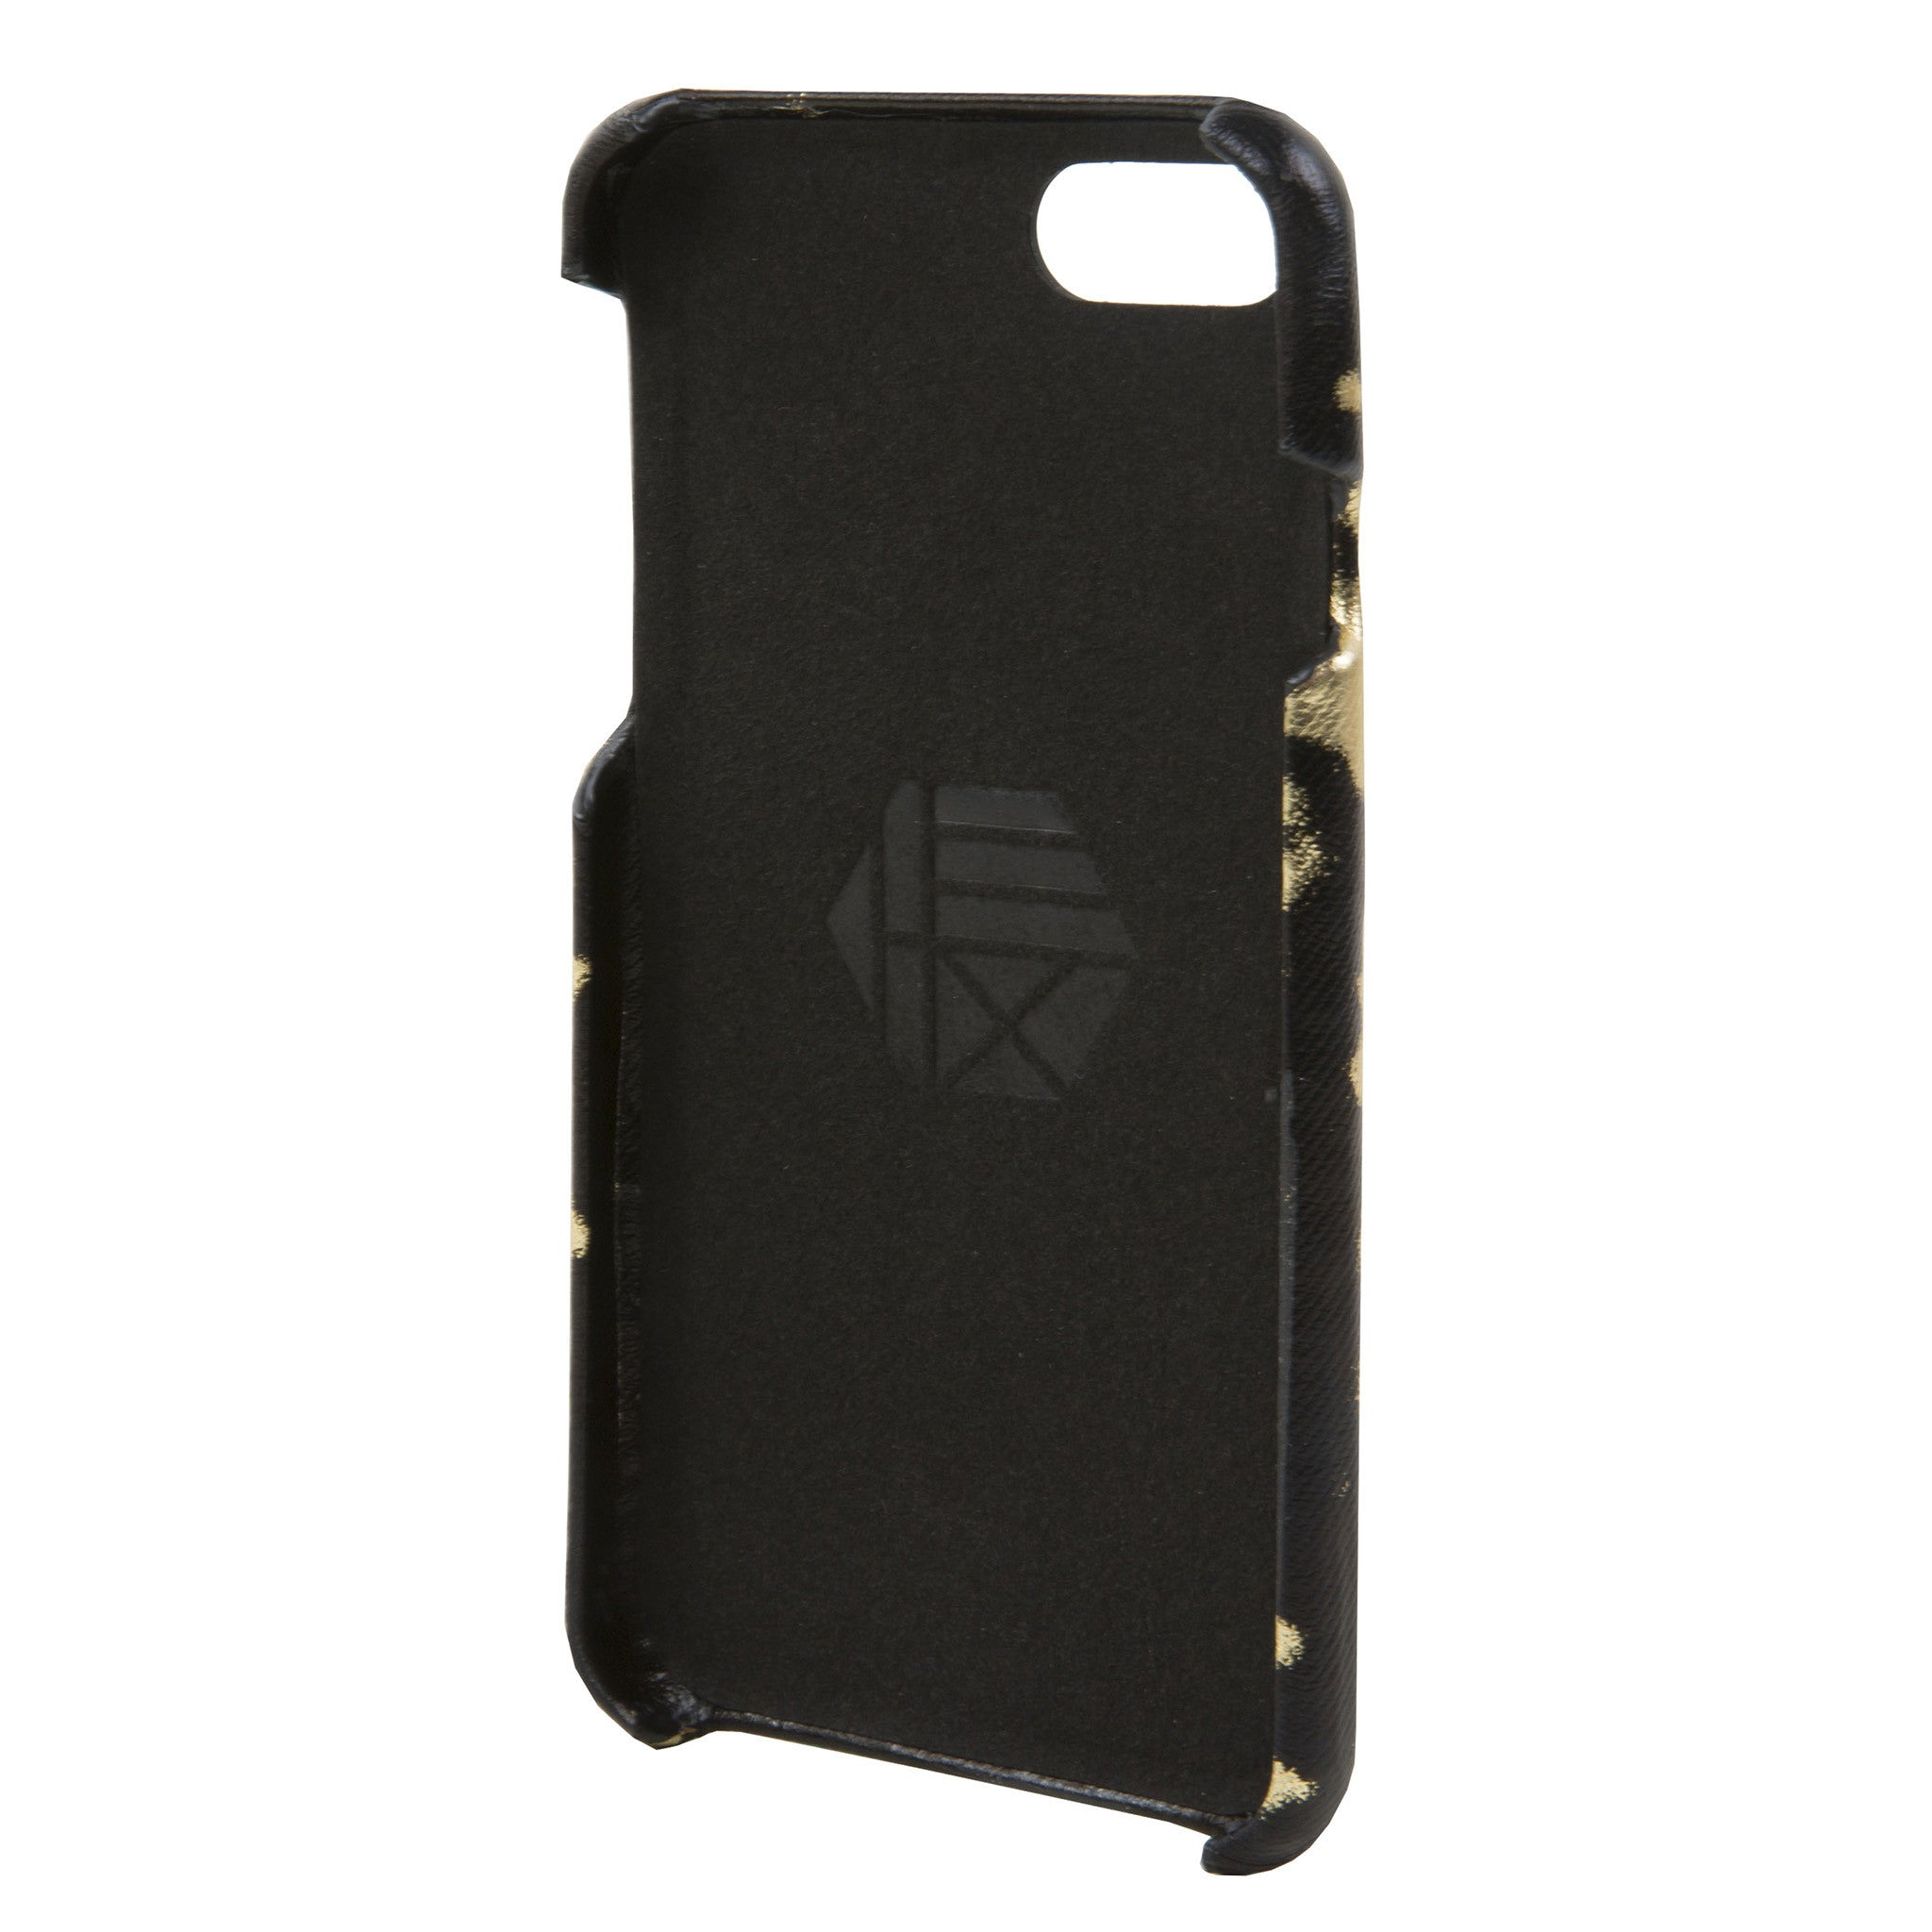 on sale 60ec3 f3447 Black/Gold Leather Focus Case for iPhone 7/8